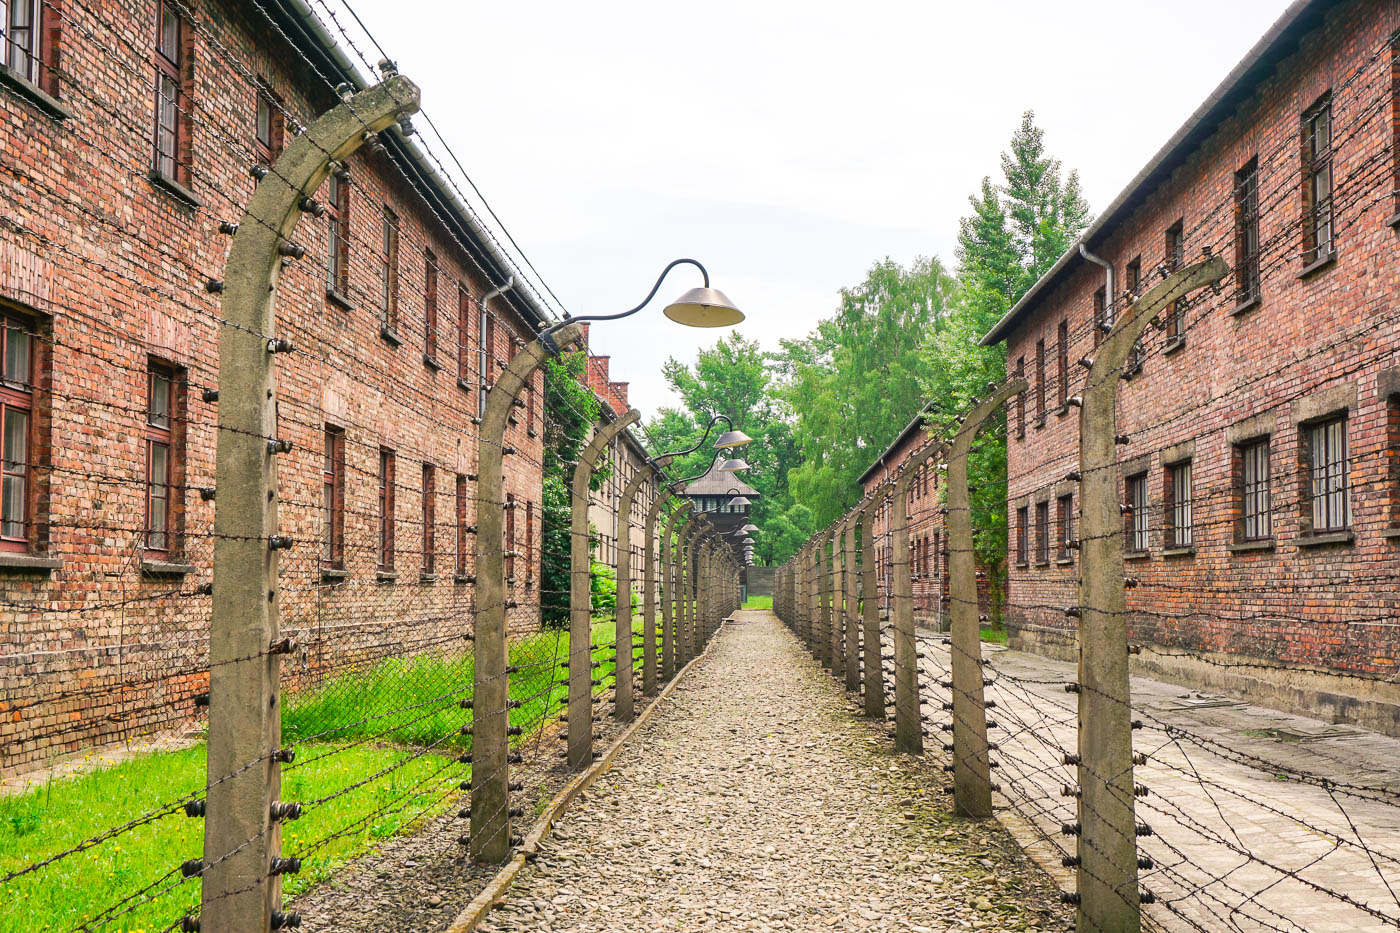 Reflections on Auschwitz-Birkenau Concentration Camps via Wayfaring With Wagner